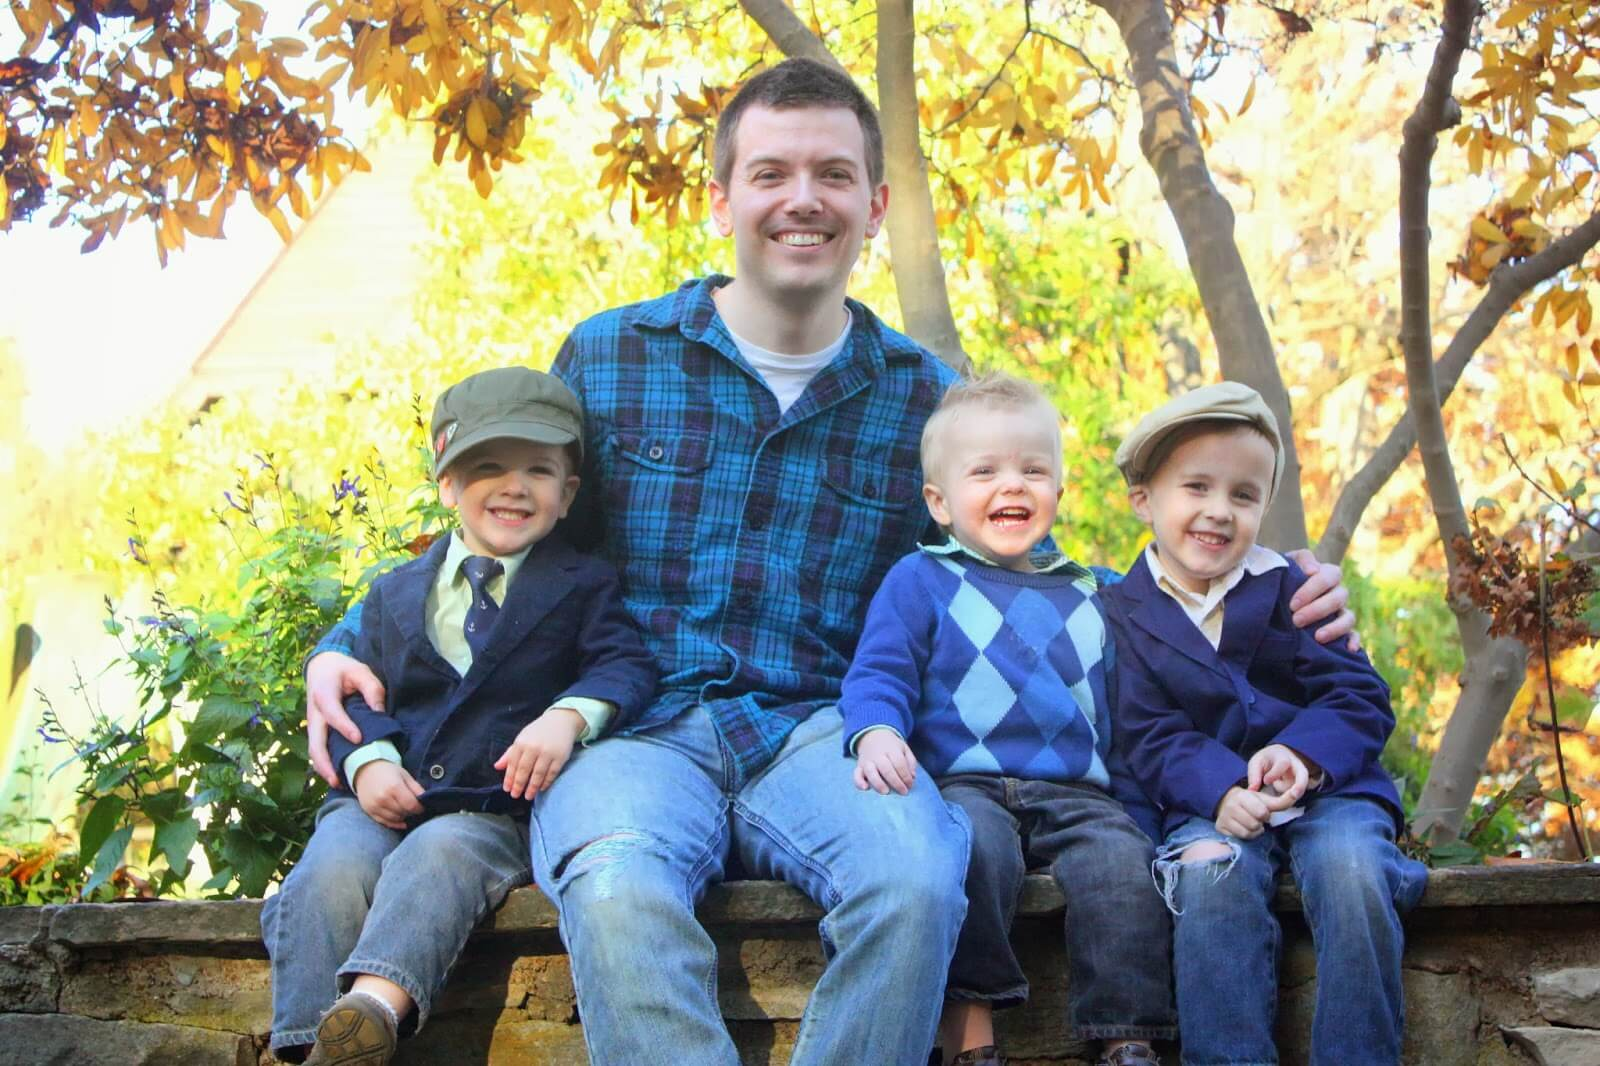 dad and 3 sons